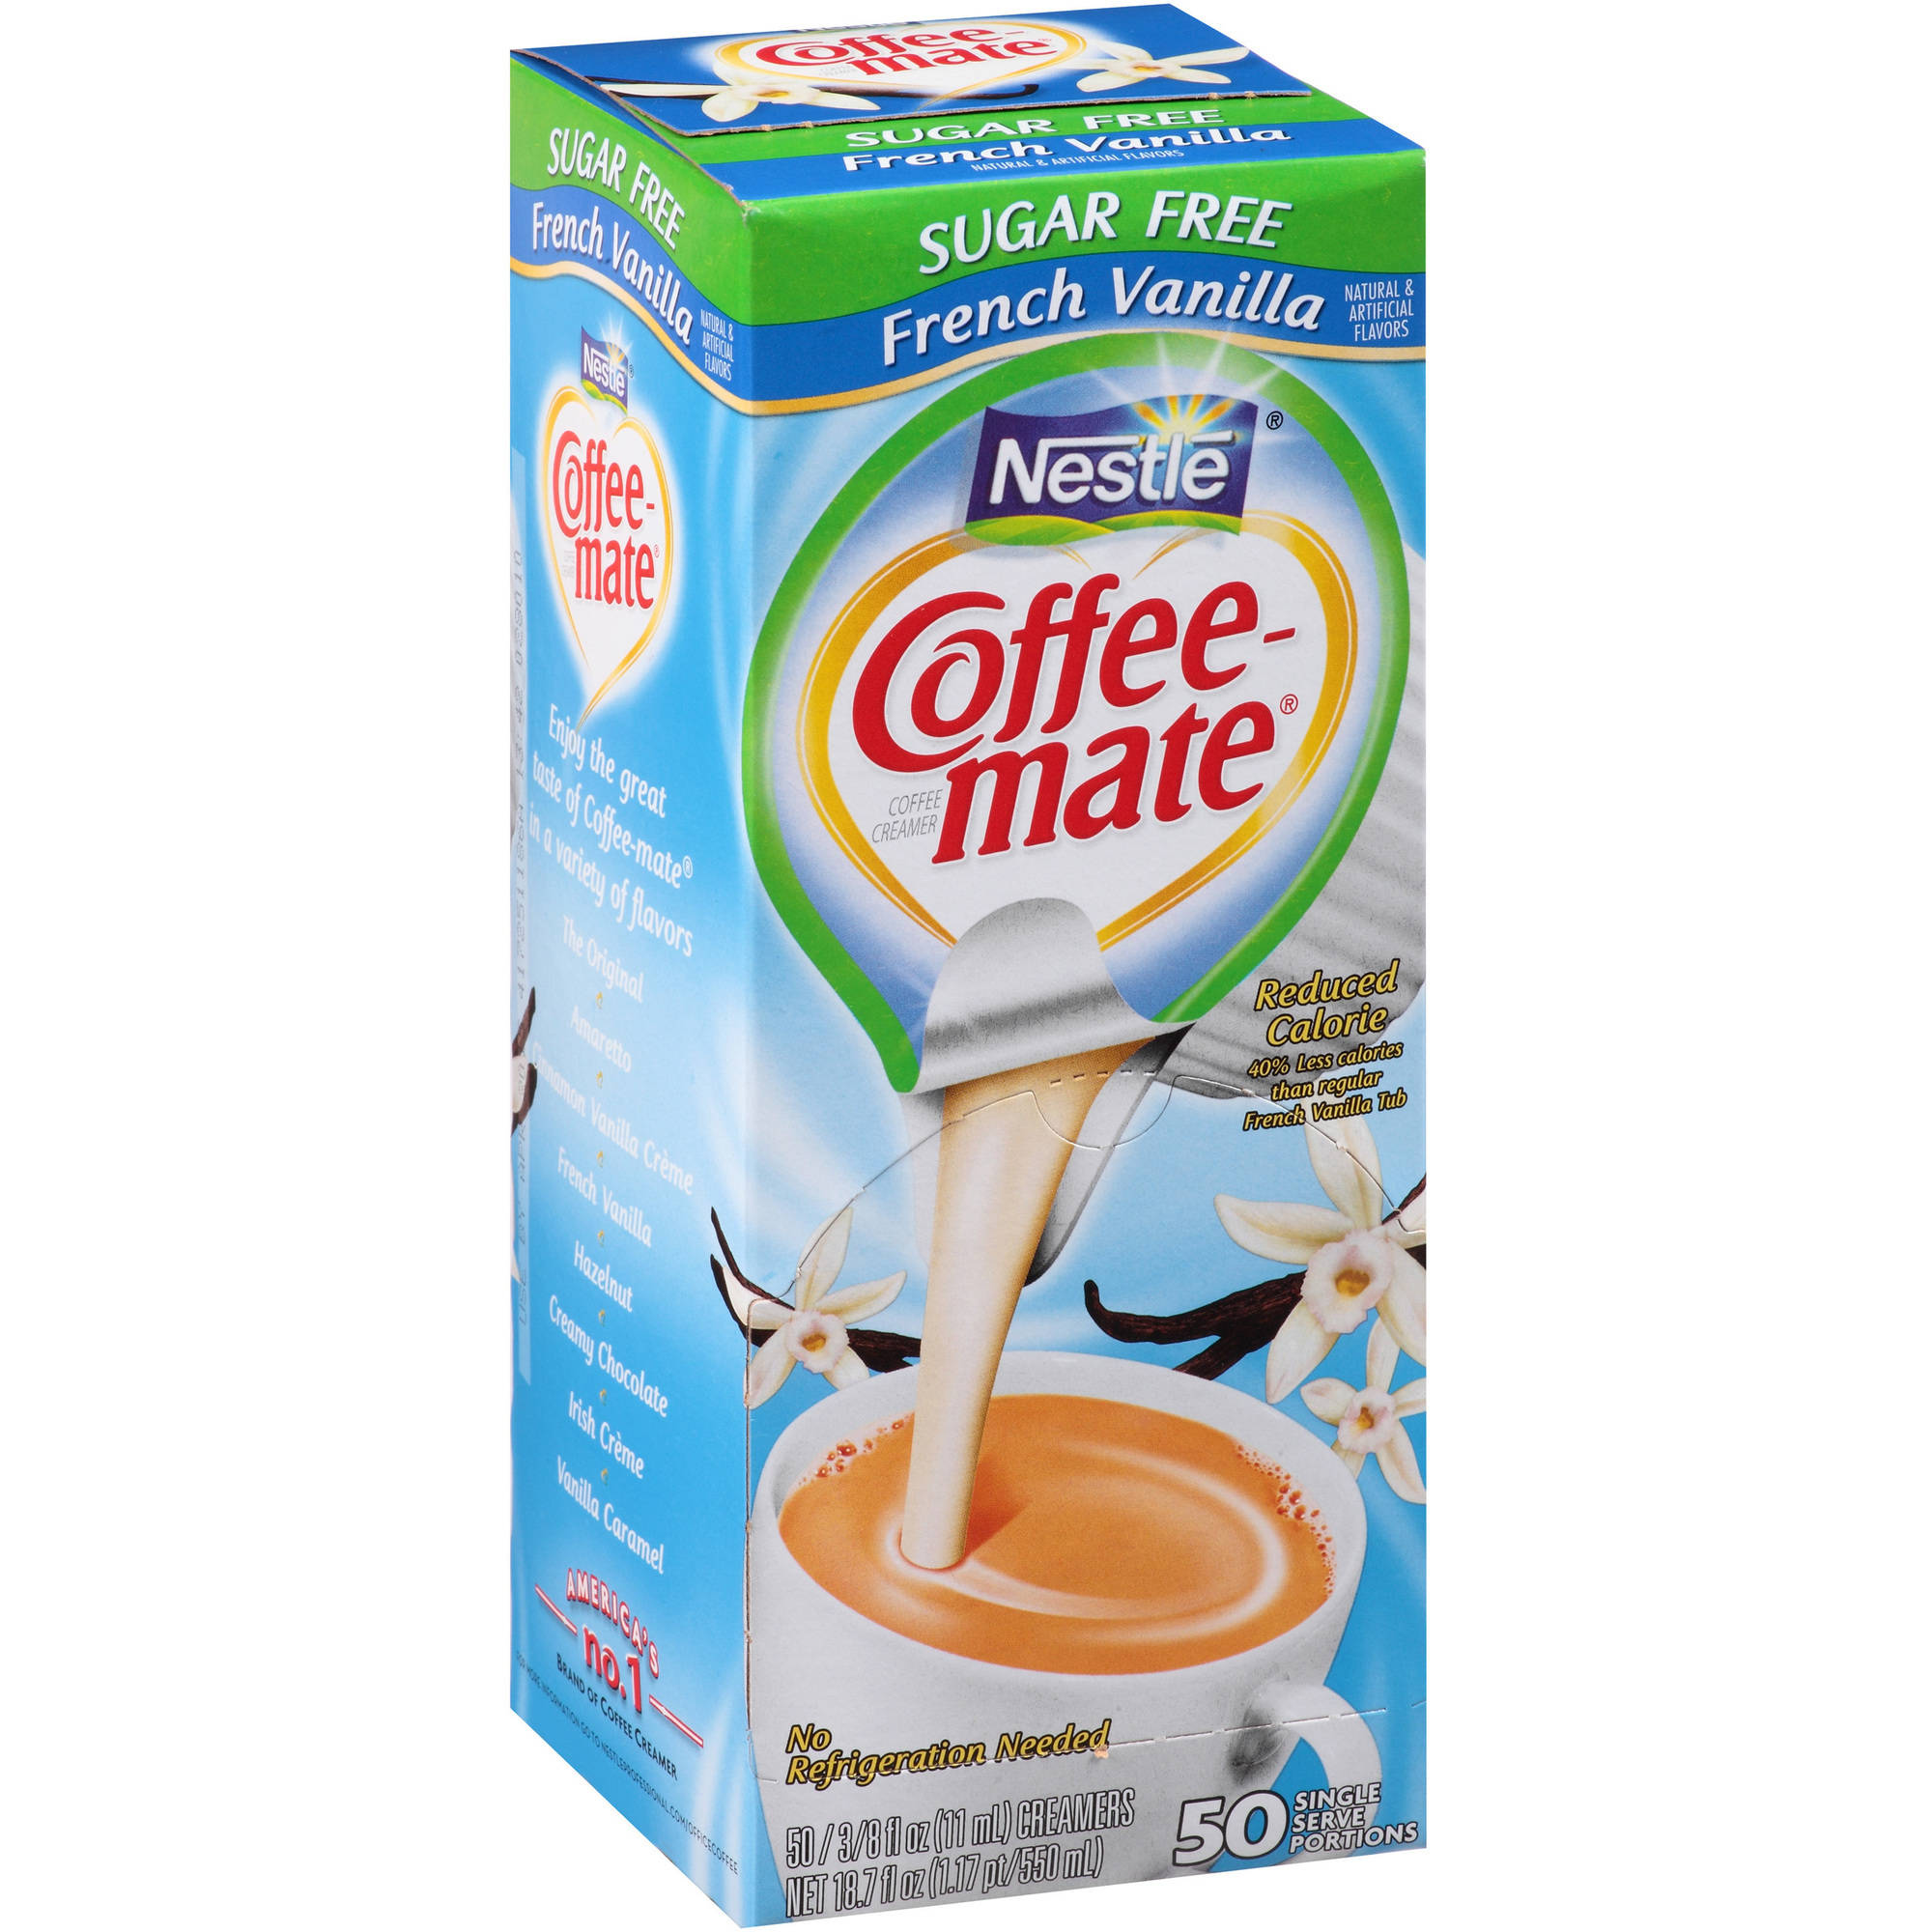 Nestlé Coffee-mate Sugar Free French Vanilla Coffee Creamer 50-0.375 fl. oz. Tubs